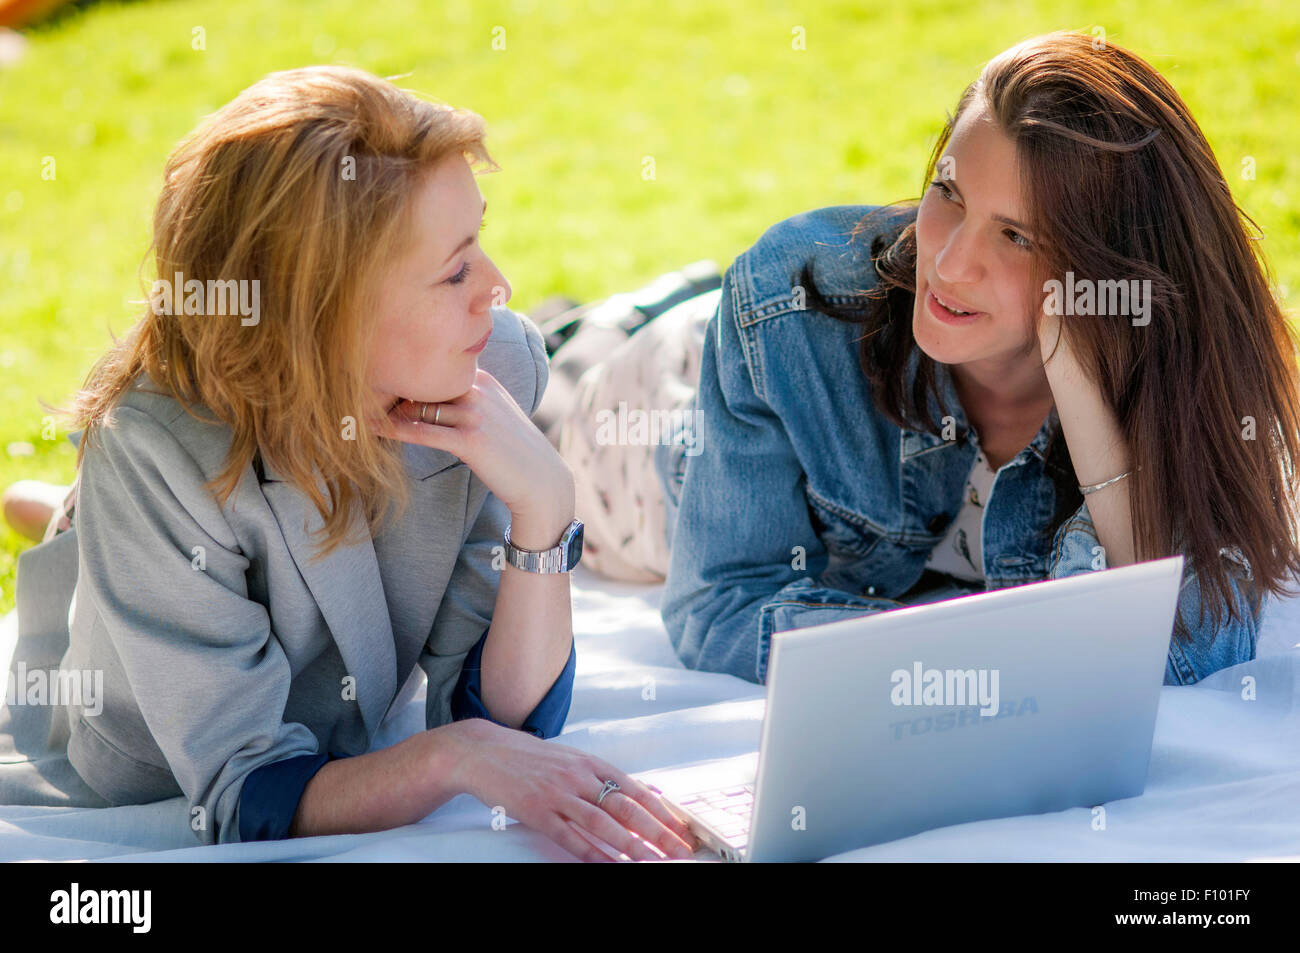 WOMAN WITH COMPUTER - Stock Image